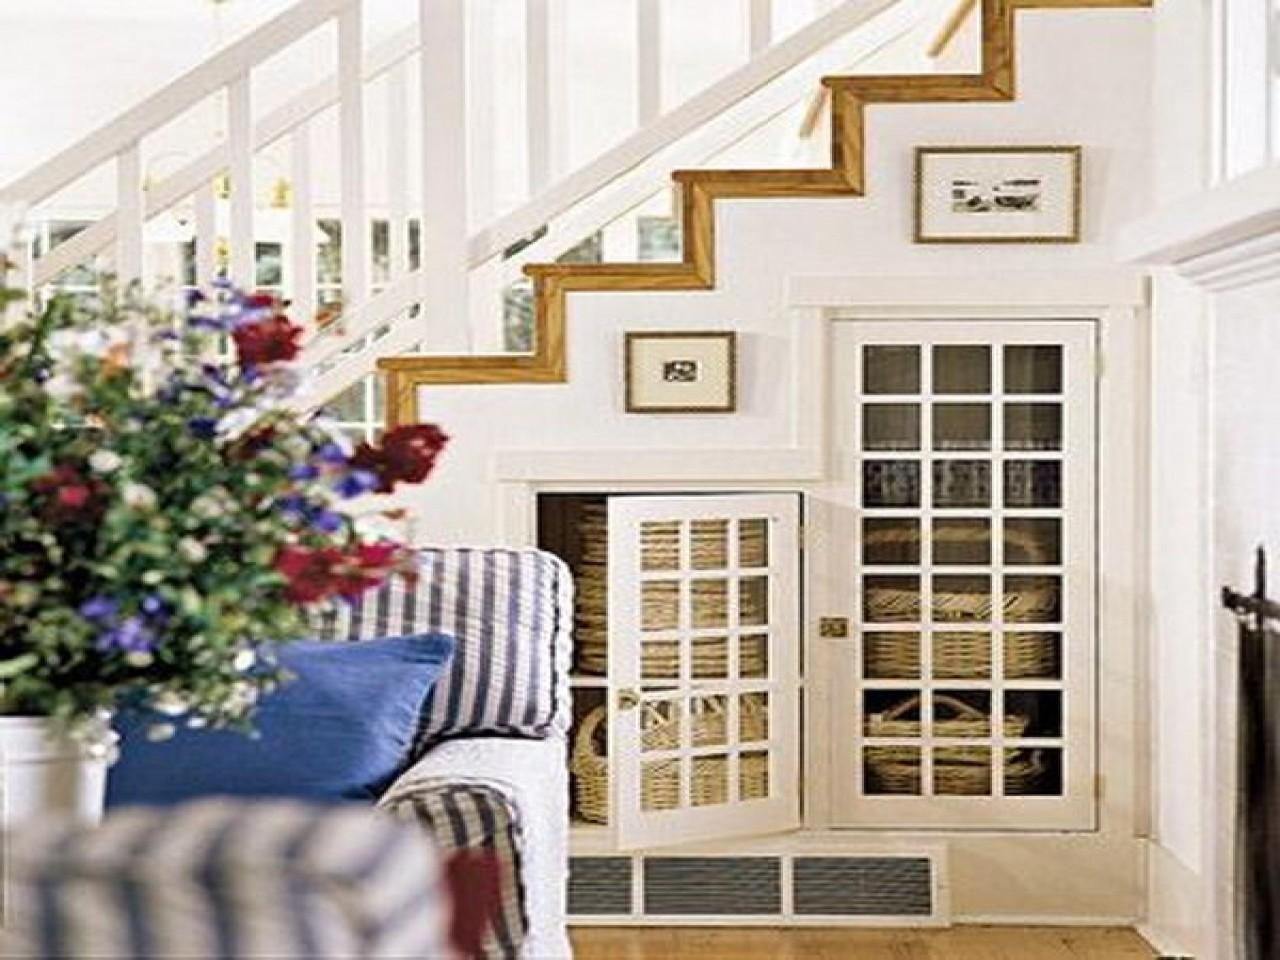 Space Saving Staircase Storage Under Basement Stairs Idea